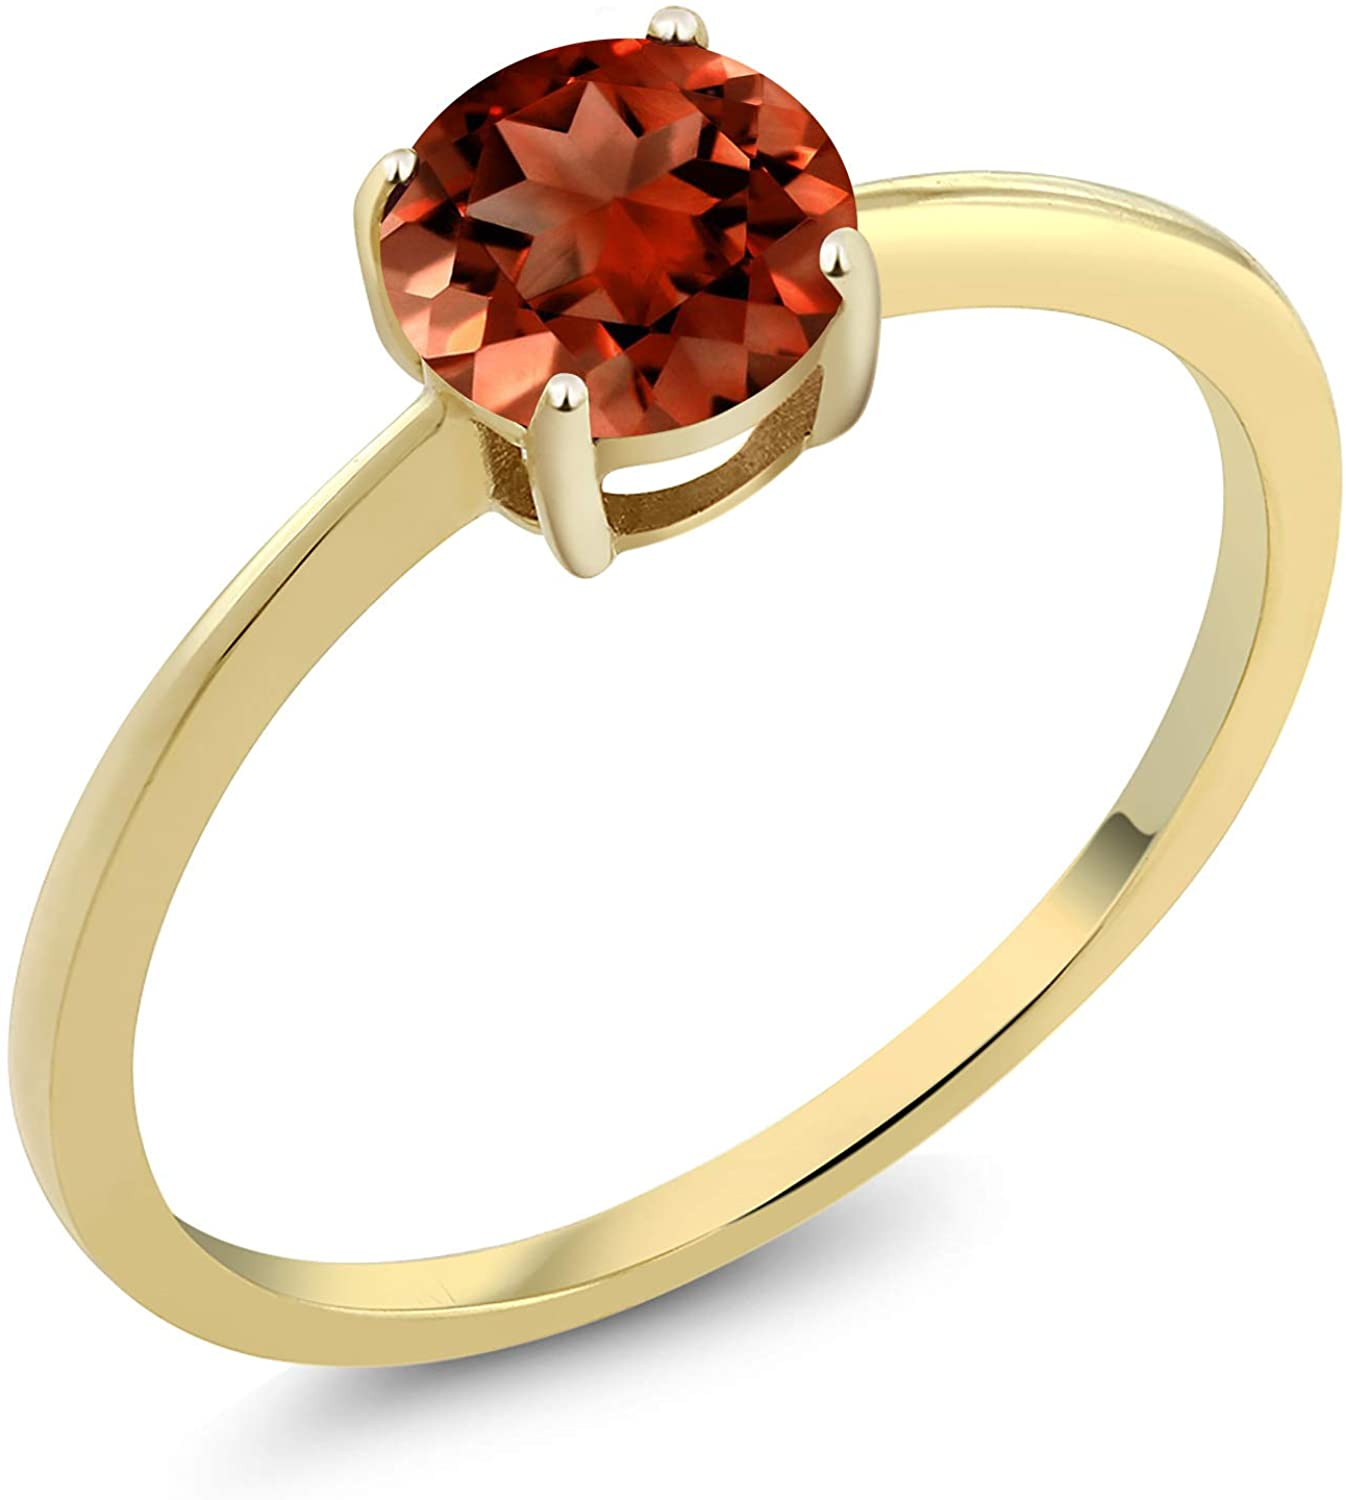 Gem Stone King 10K Yellow Gold Round Red Garnet Gemstone Birthstone Solitaire Engagement Ring 1.00 cttw (Available 5,6,7,8,9)